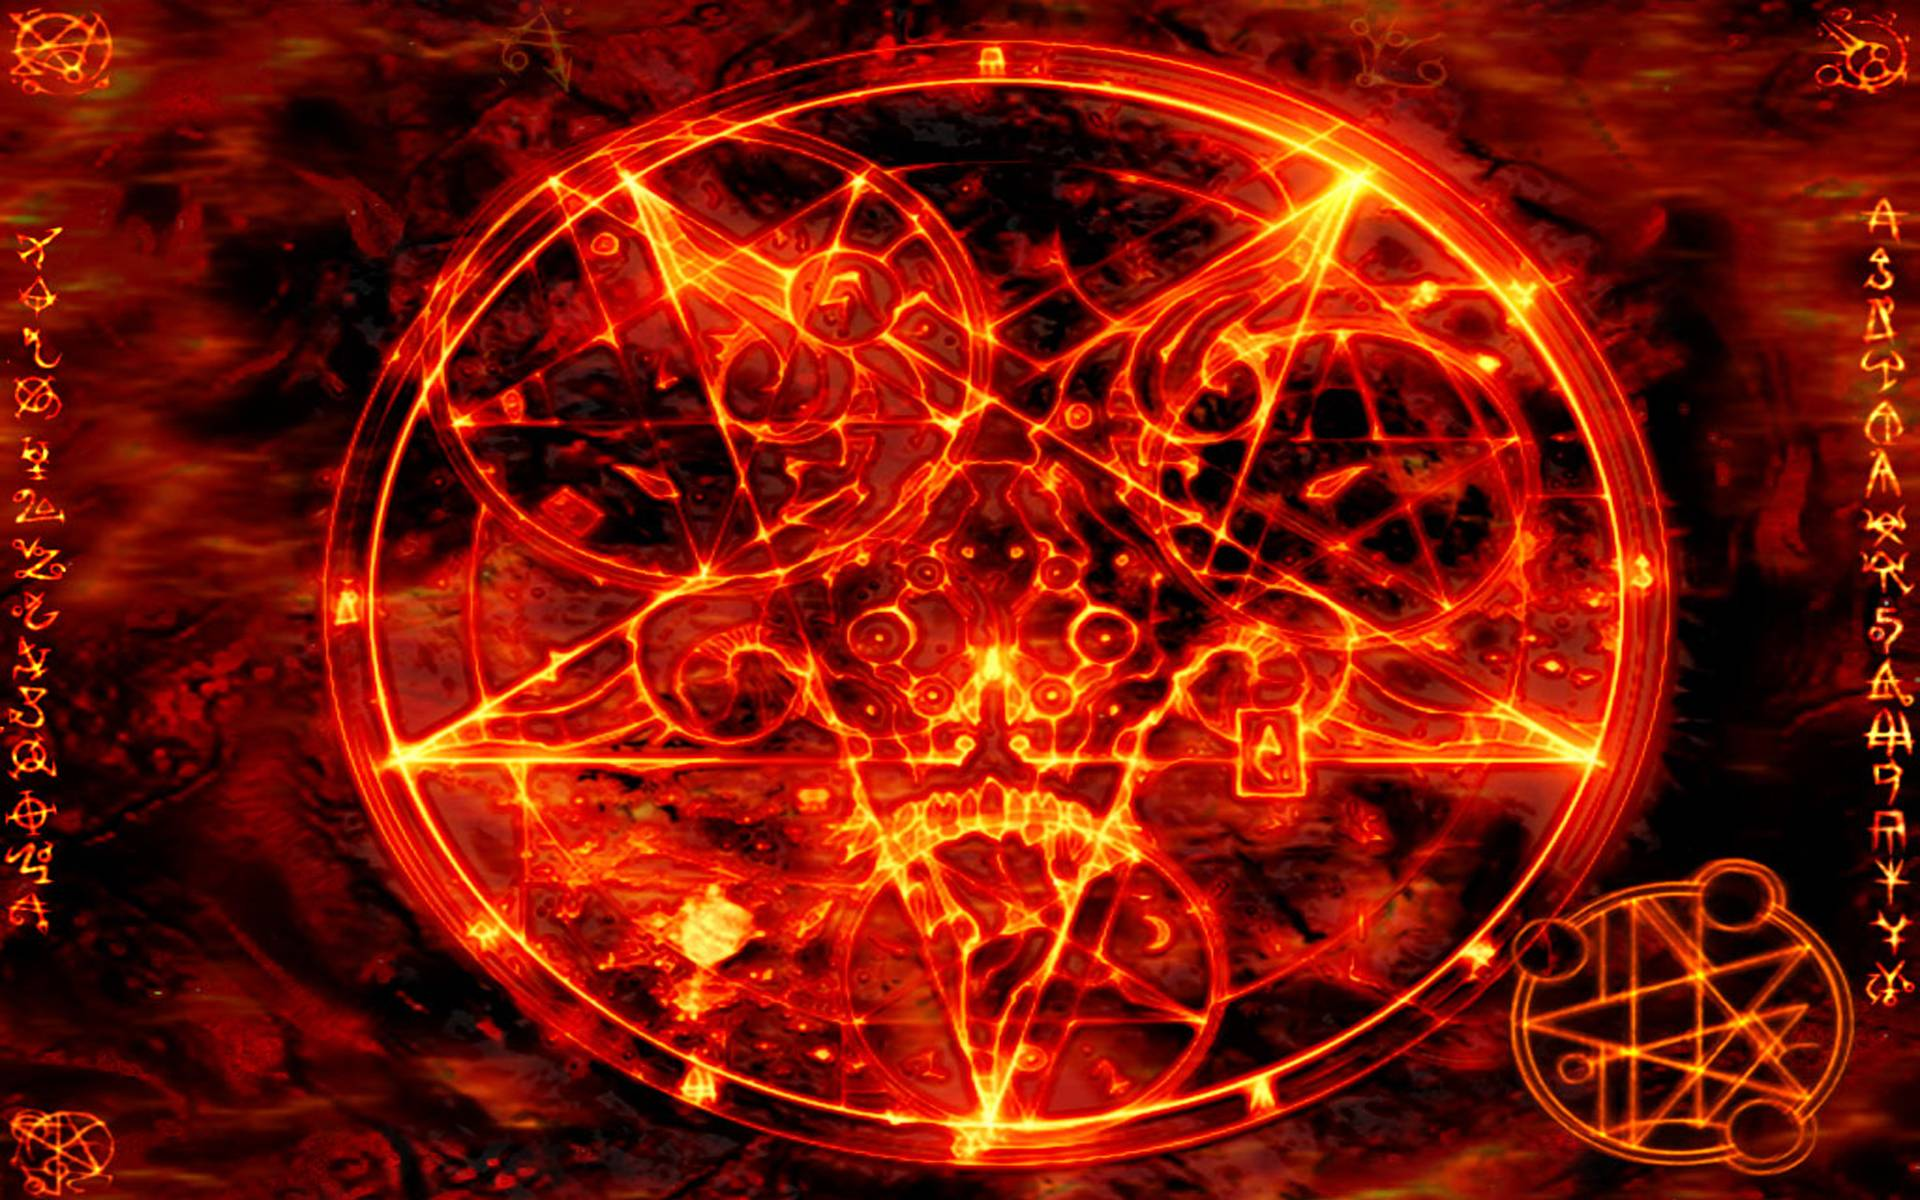 Pentagram Live Wallpaper Android Apps On Google Play 1920x1200